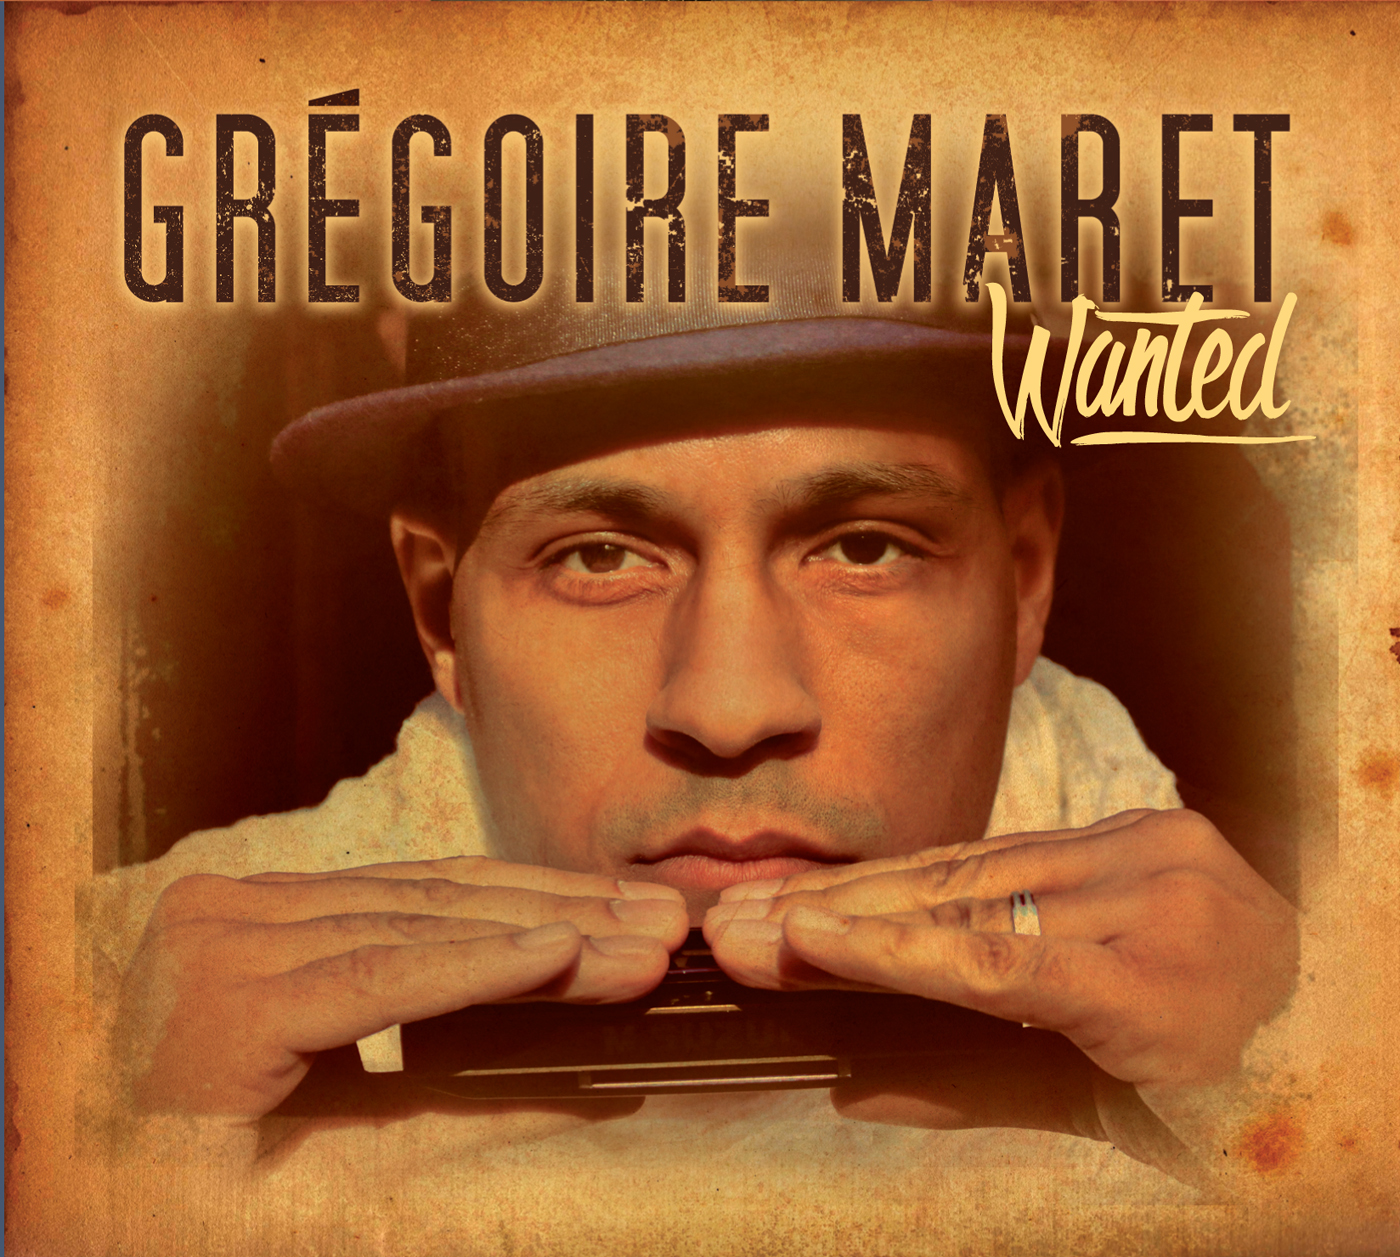 Wanted  by Gregoire  Maret cover